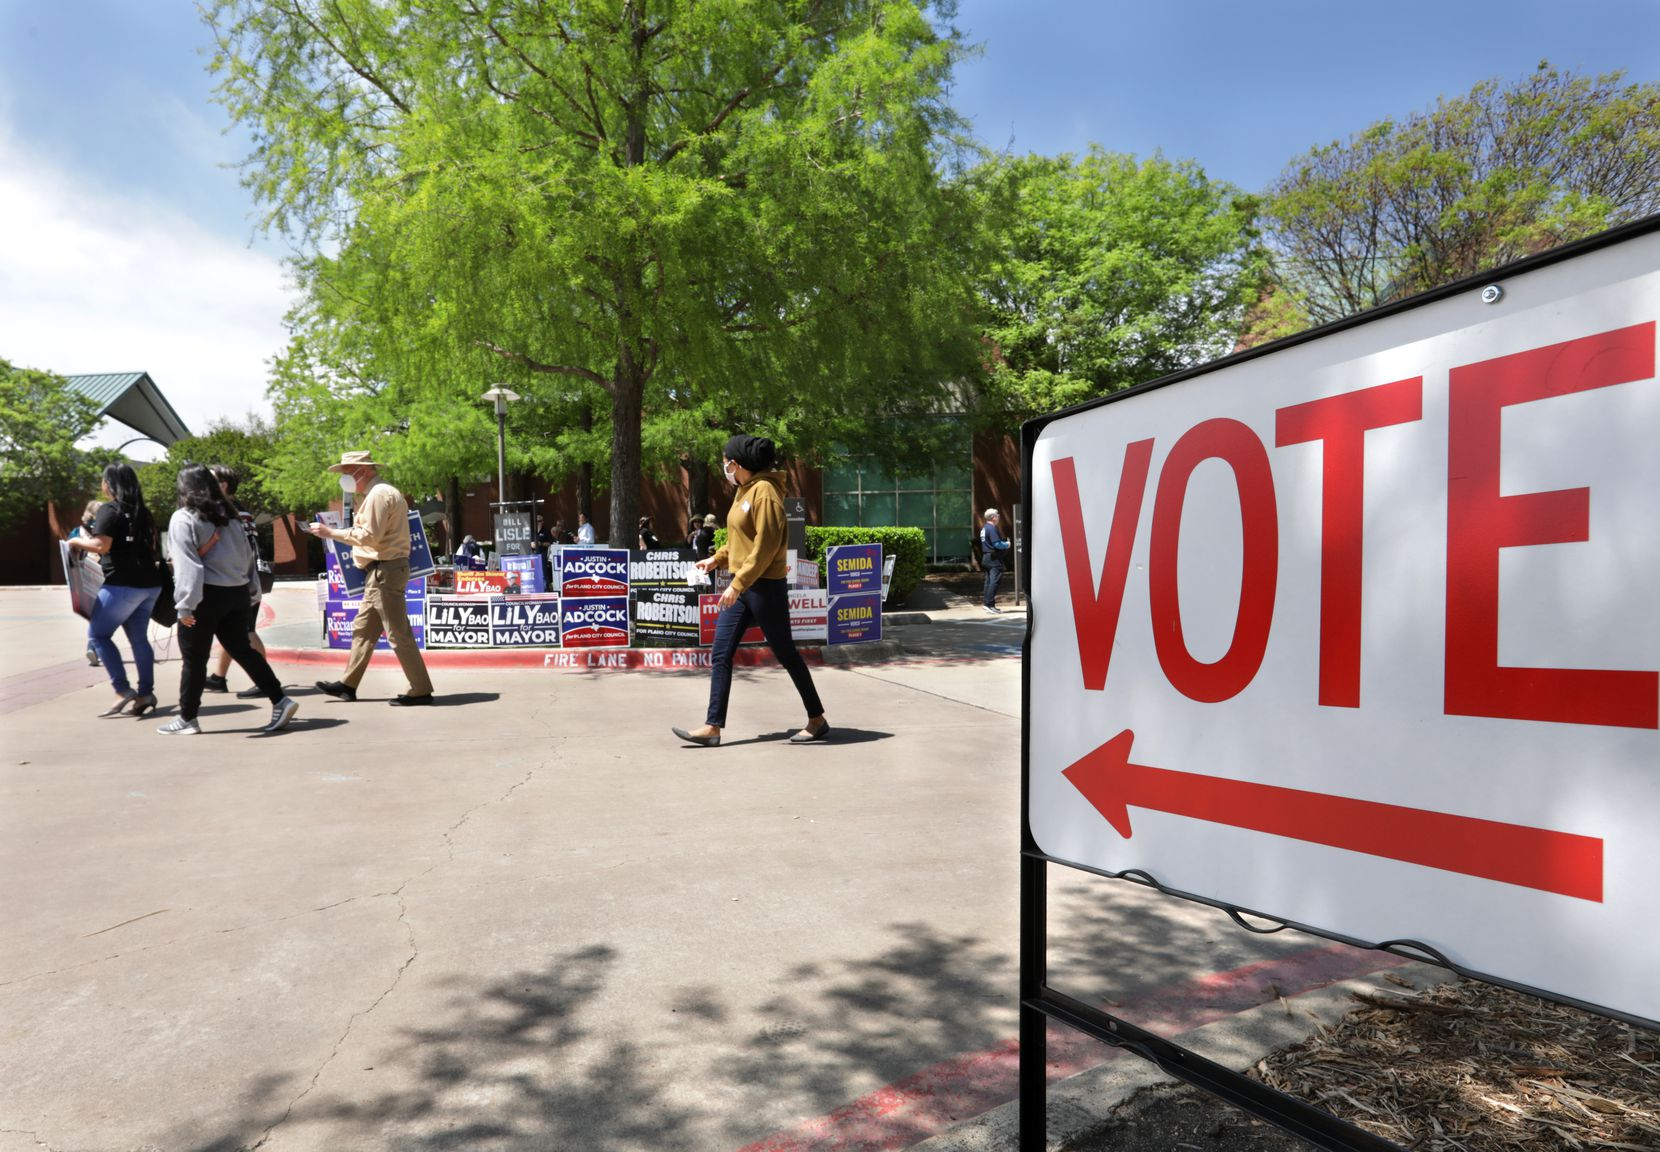 Residents across North Texas are able to participate in early voting for city and school races through April 27. Election Day is May 1.